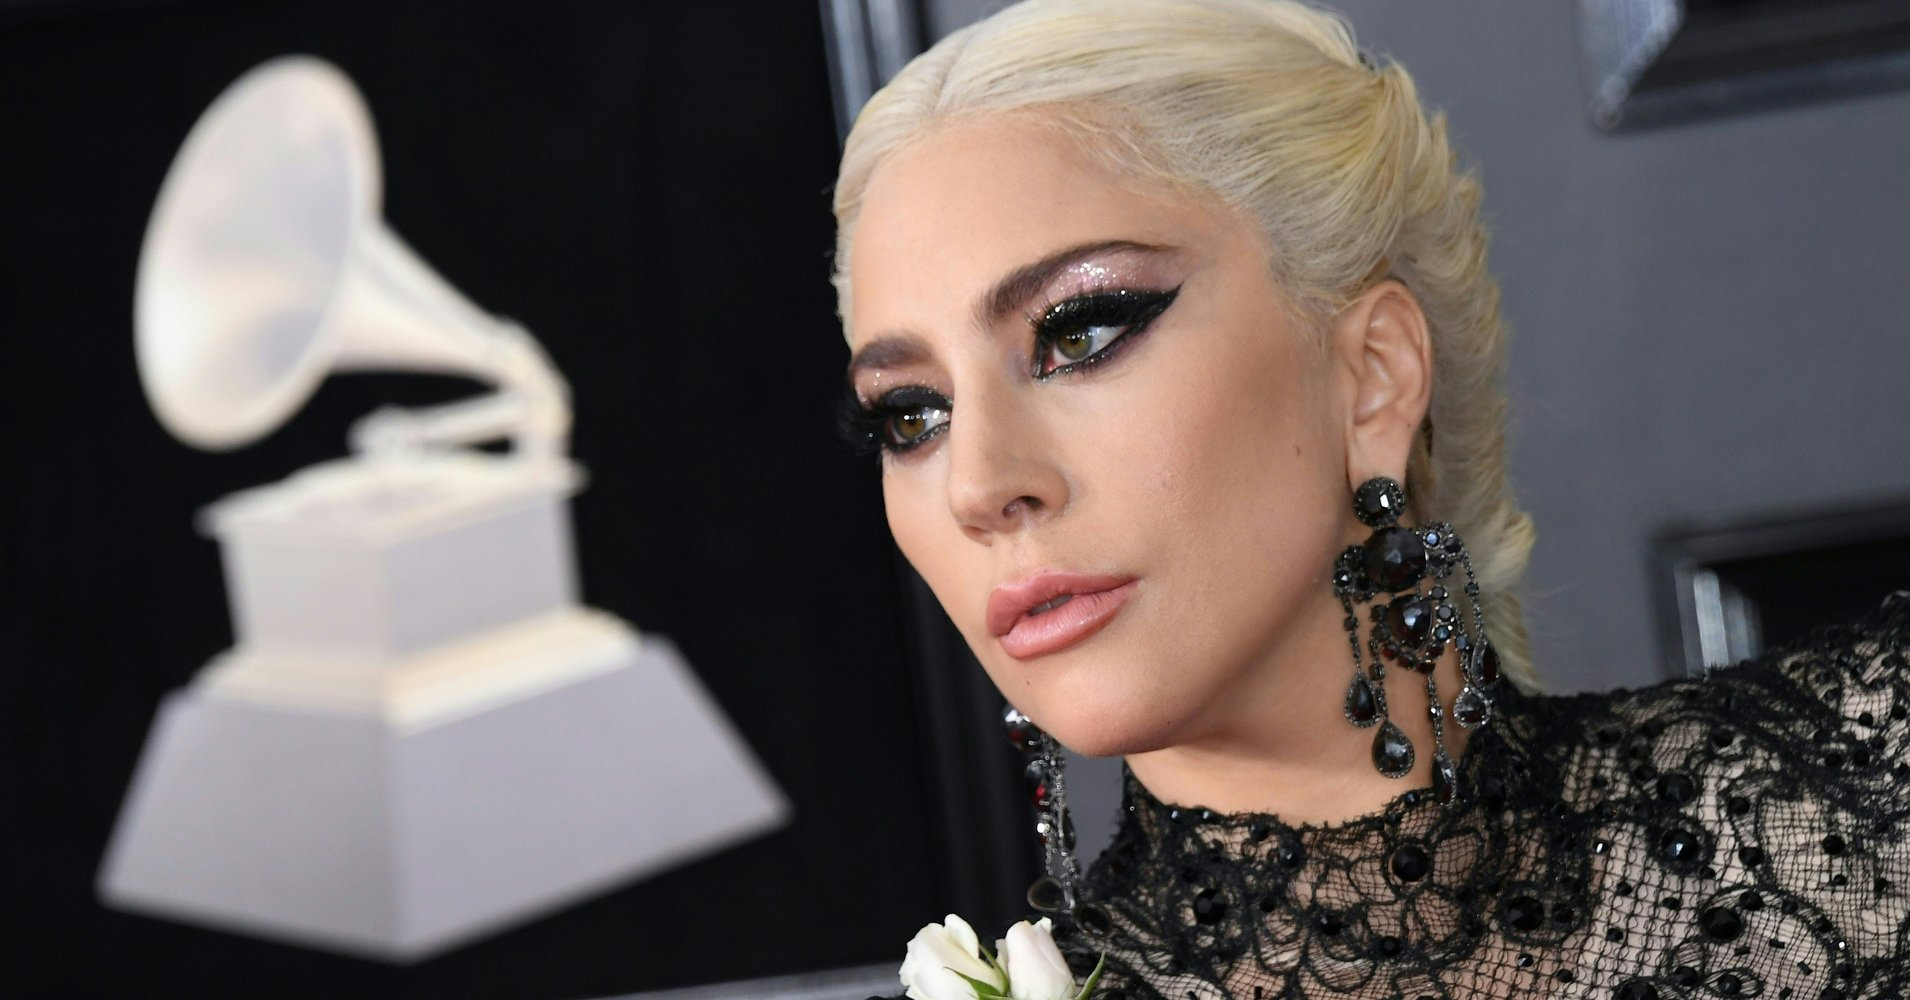 How To Get Lady Gaga's Stunning Grammys Hair And Makeup